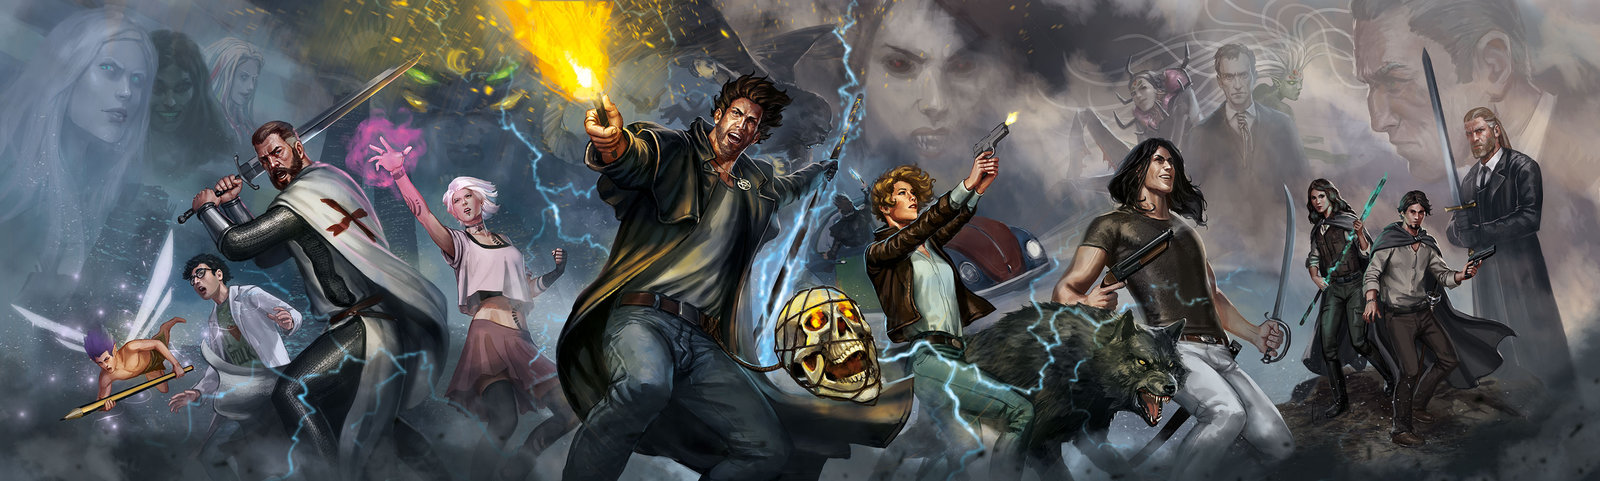 The dresden files gm screen